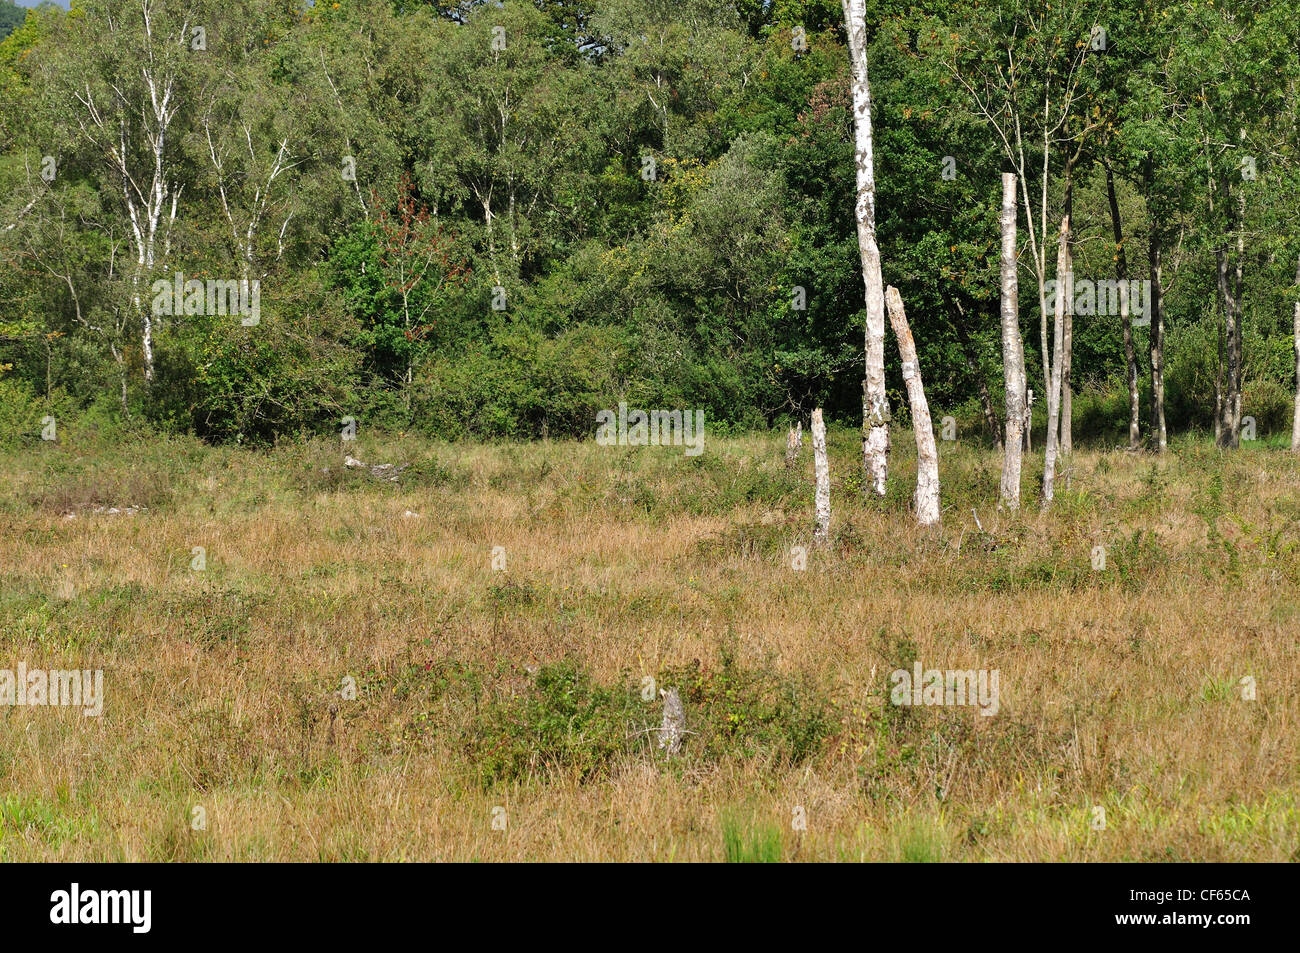 A view of a Dorset WIldlife Trust Reserve, Bracketts Coppice UK Stock Photo